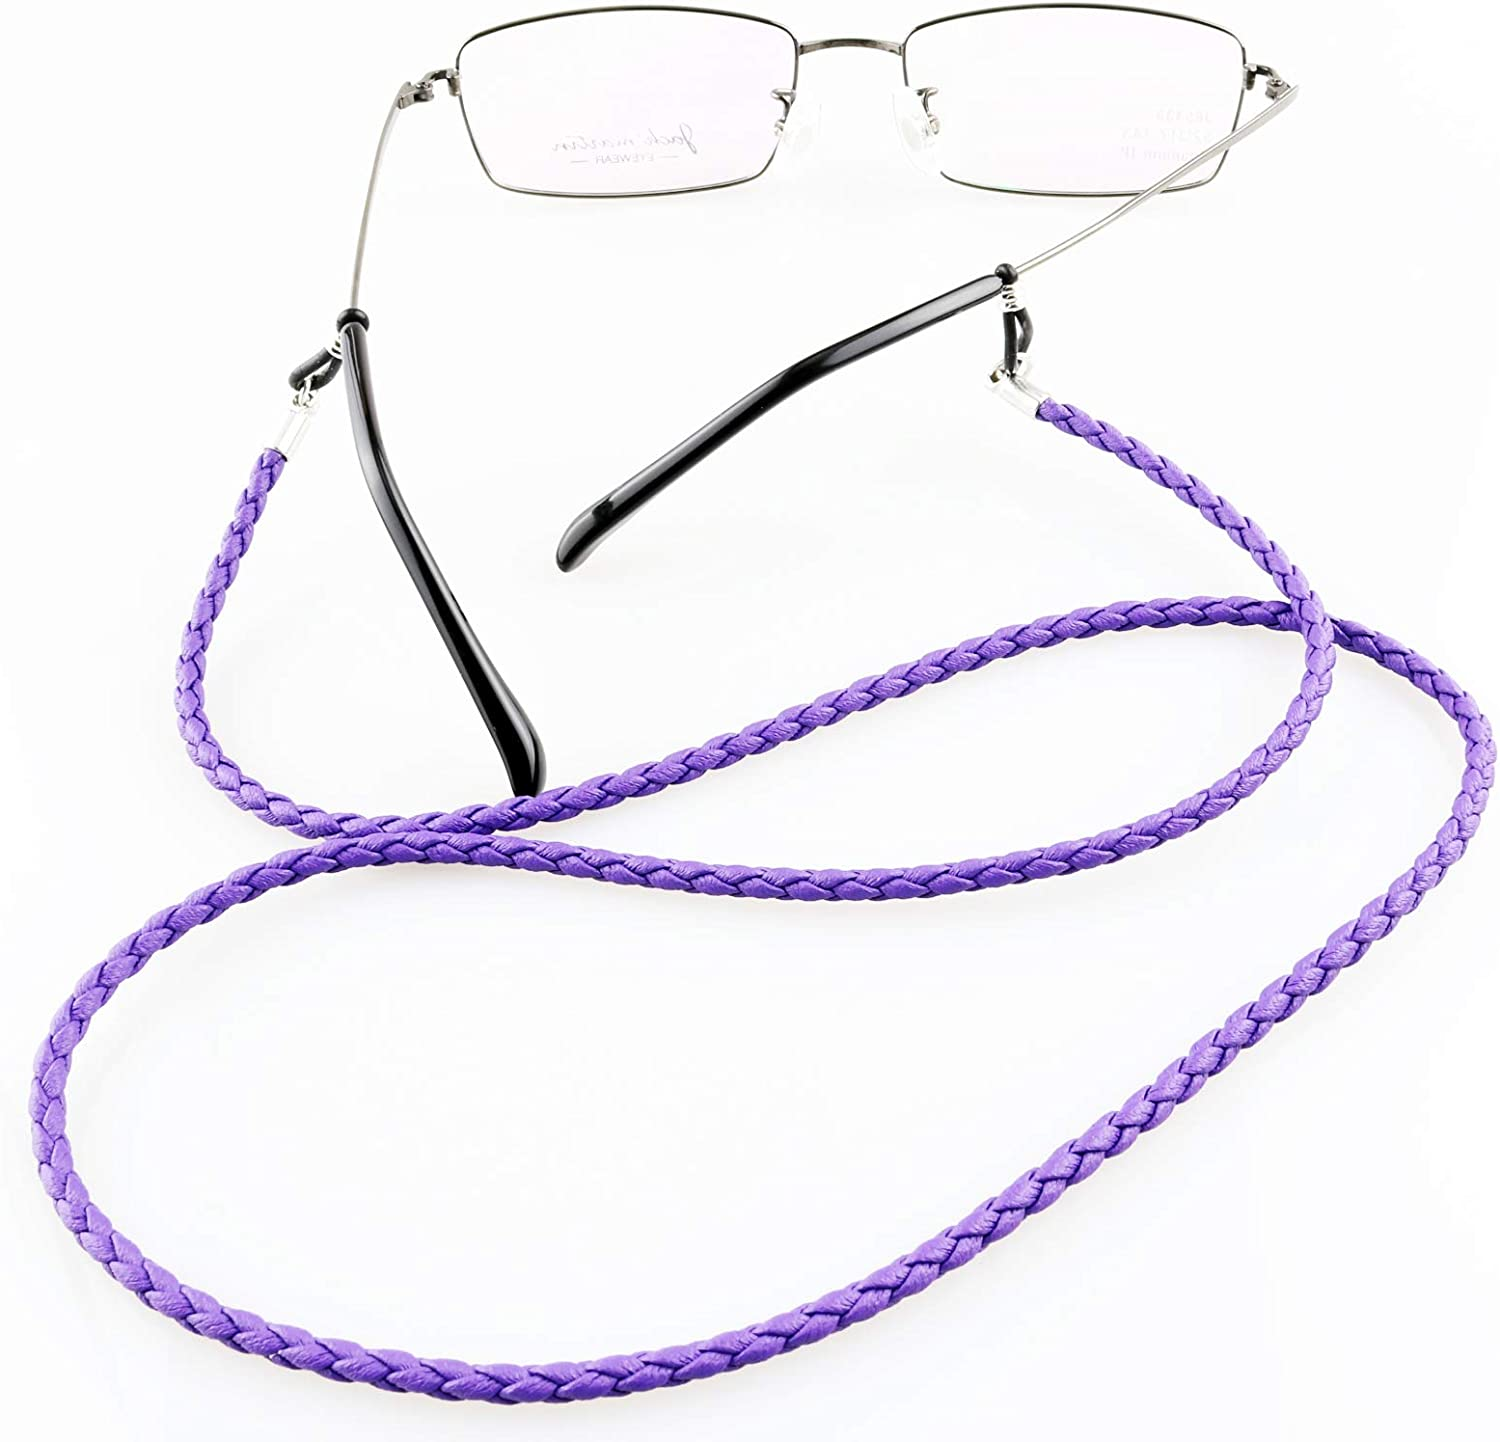 Ultra Soft VITO Anti-Slip Lightweight Leather Eyeglasses Chain Cord Holder Retainer for Spectacles /& Sunglasses A008 70cm Fits All Eyeglasses Types